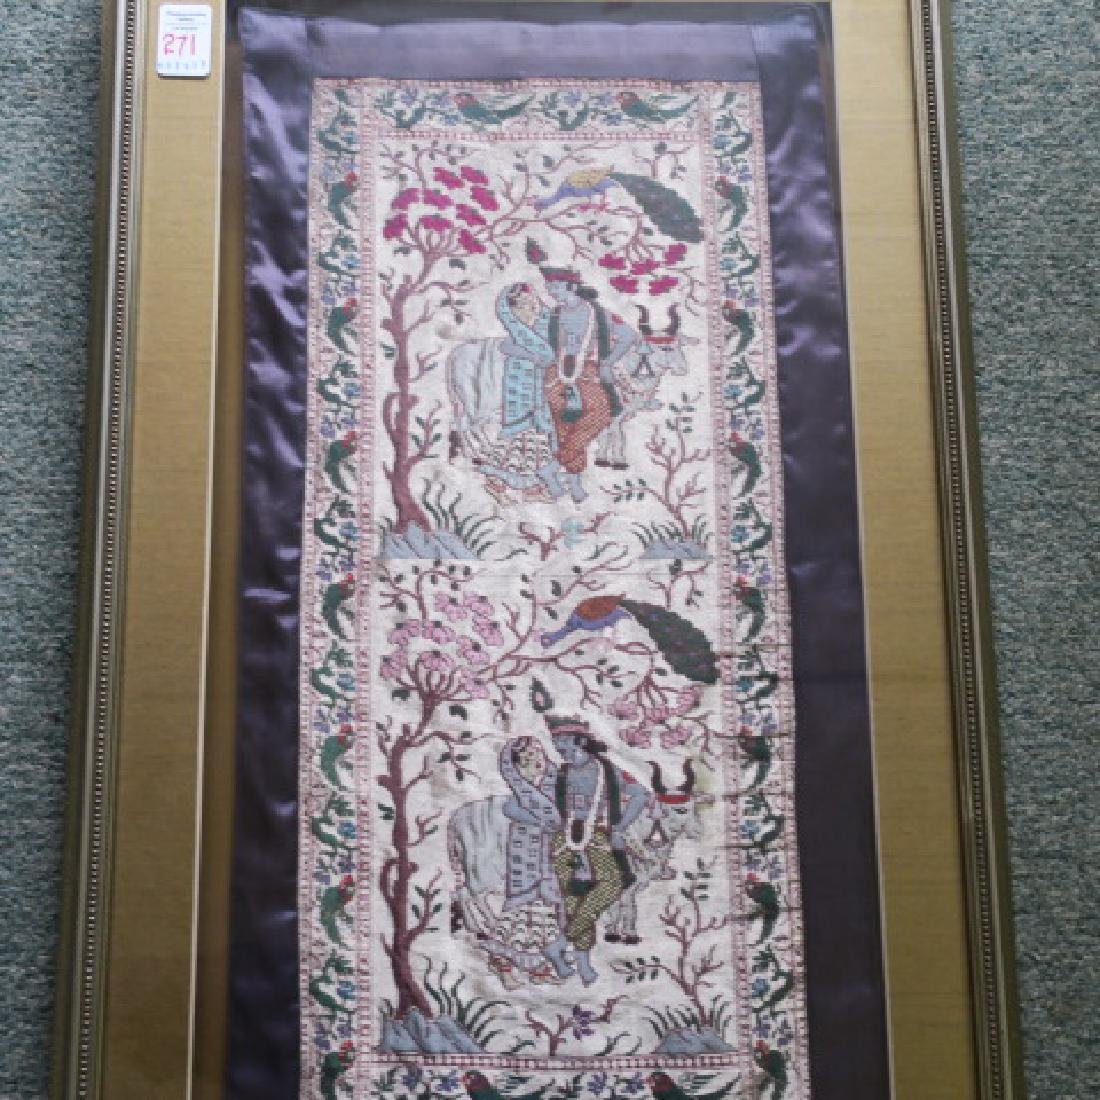 Pictorial Middle Eastern Framed Tapestry: - 4